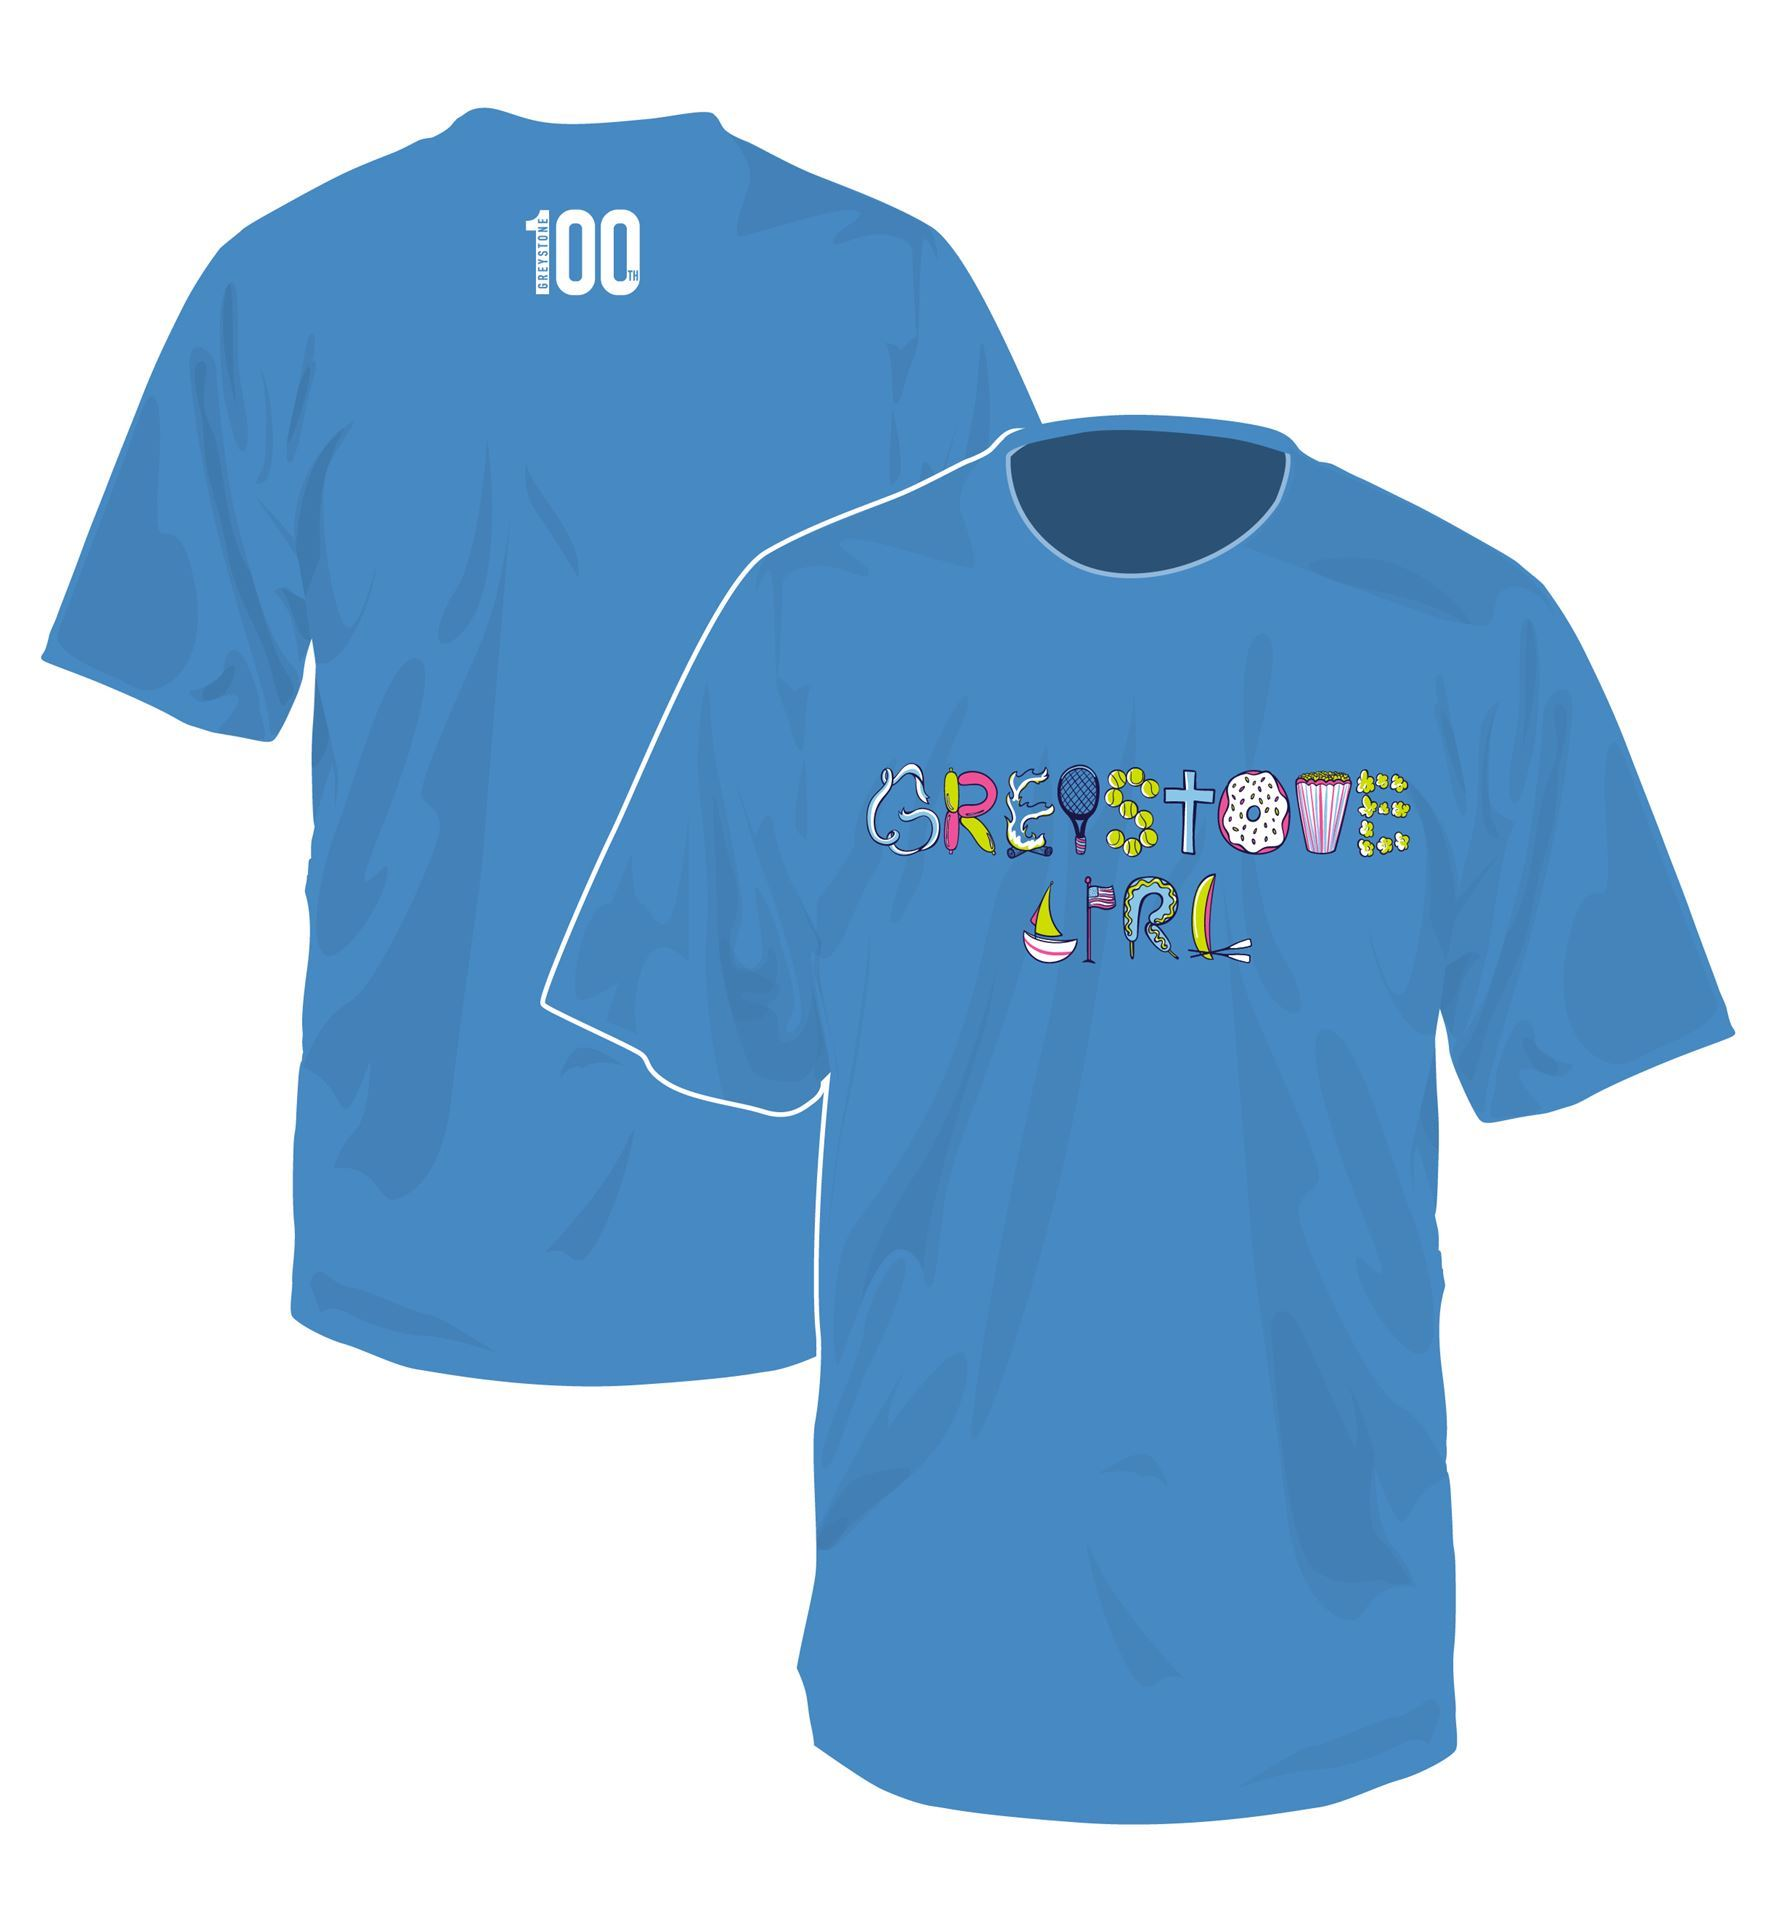 Picture of Greystone Girl 2019 - Youth Large Blue Only